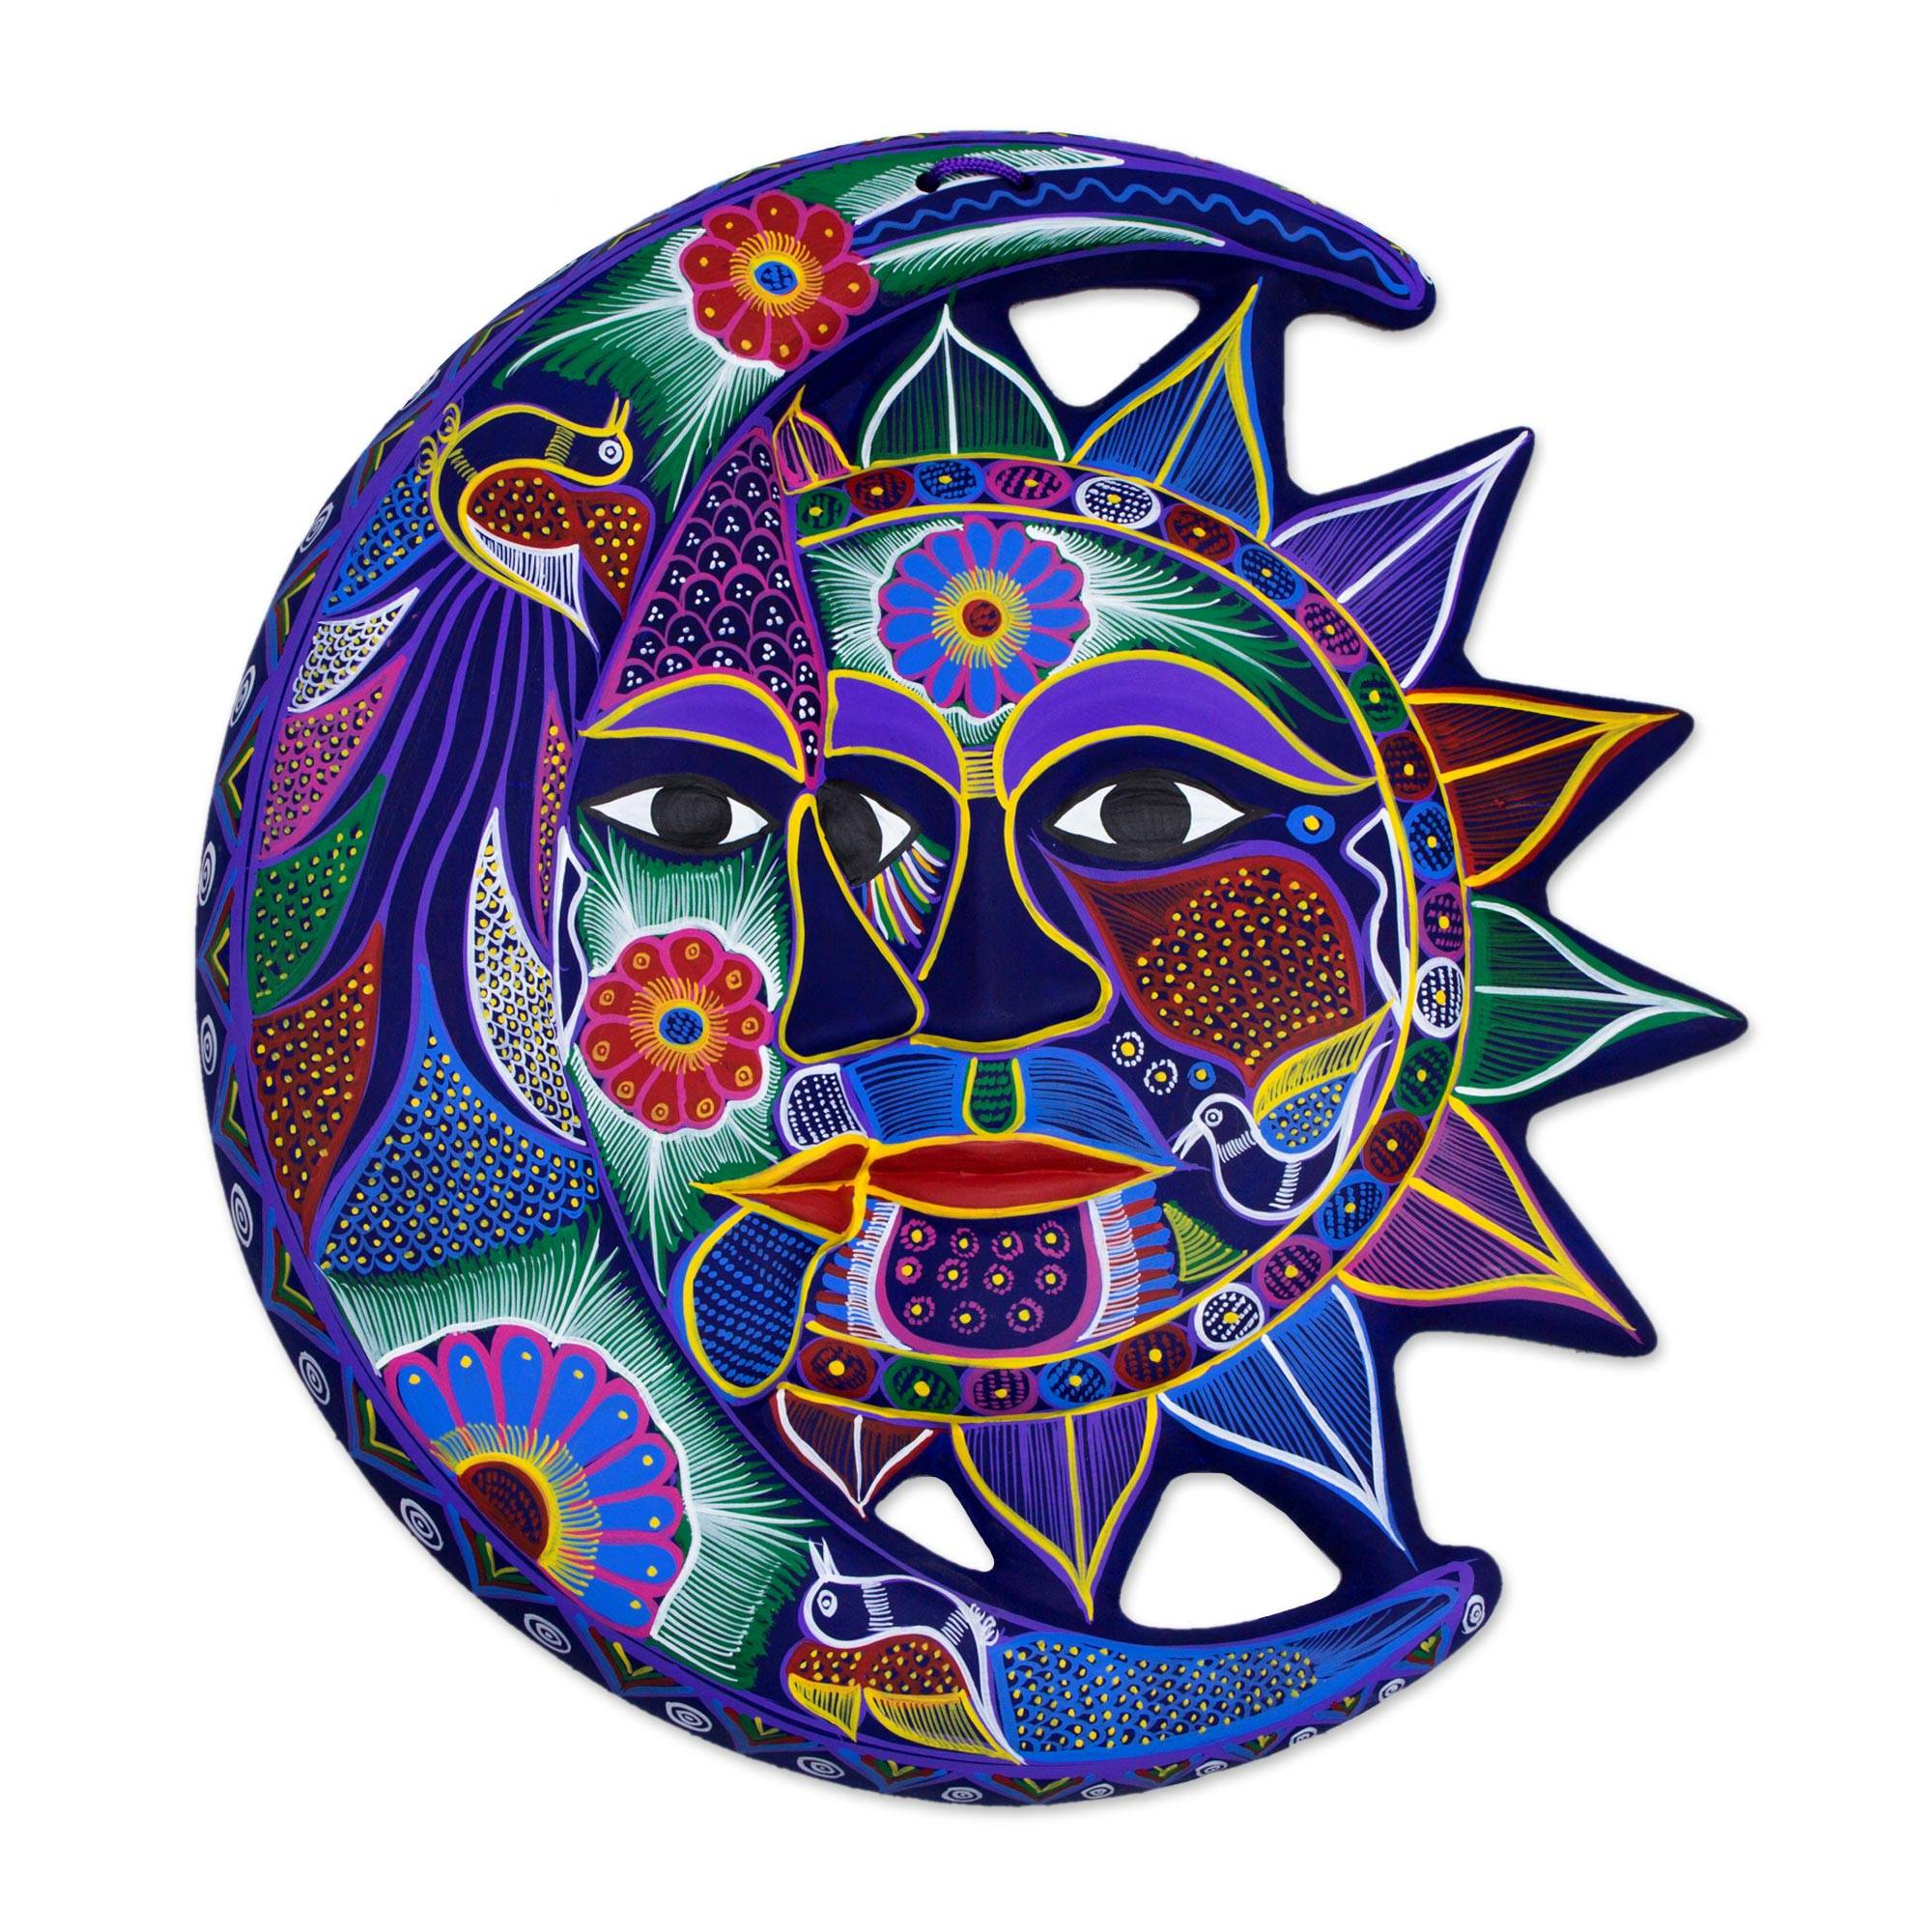 Hand painted sun and moon ceramic wall art fantastical eclipse hand painted sun and moon ceramic wall art fantastical eclipse novica amipublicfo Images